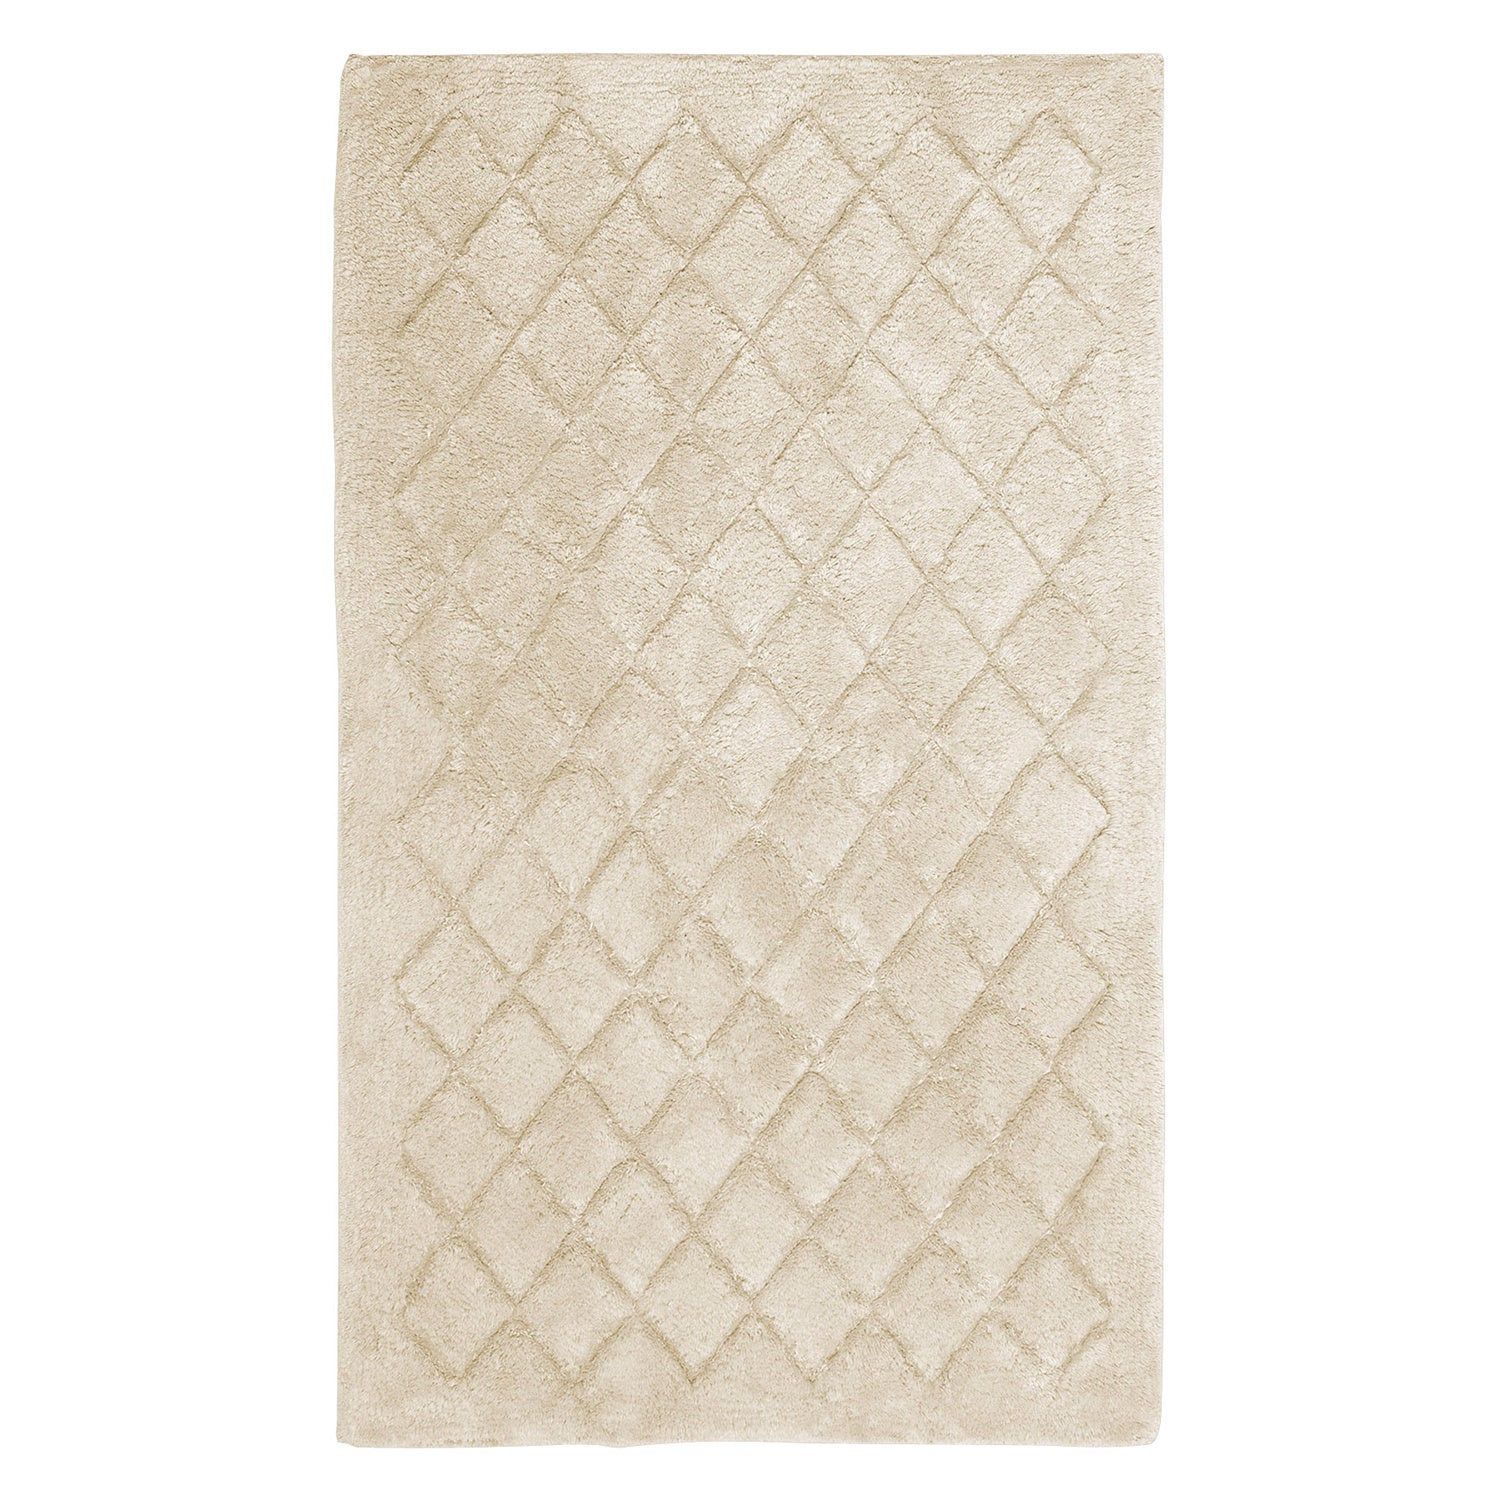 Avanti Solid Color Bathroom Bath Rug (27 x 45) (As Is Ite...